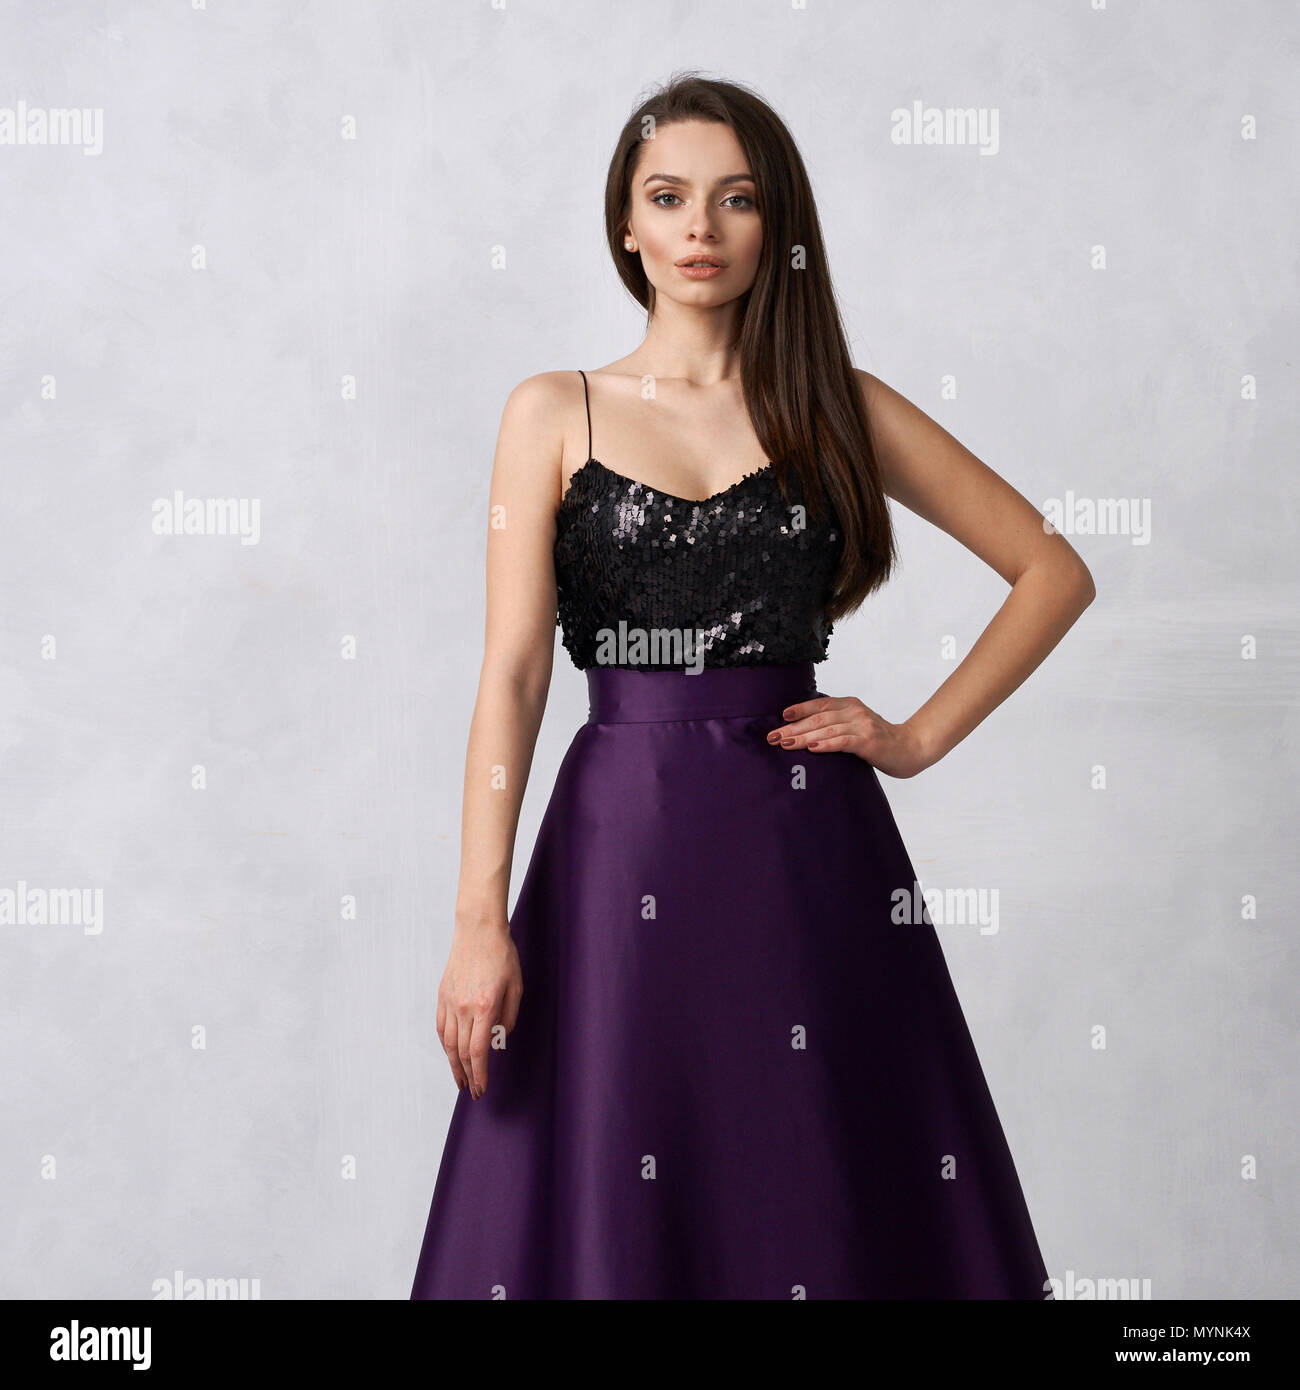 2ac8ca8ce9ec4 Young woman in formal dress with black sequin top and purple sa - Stock  Image